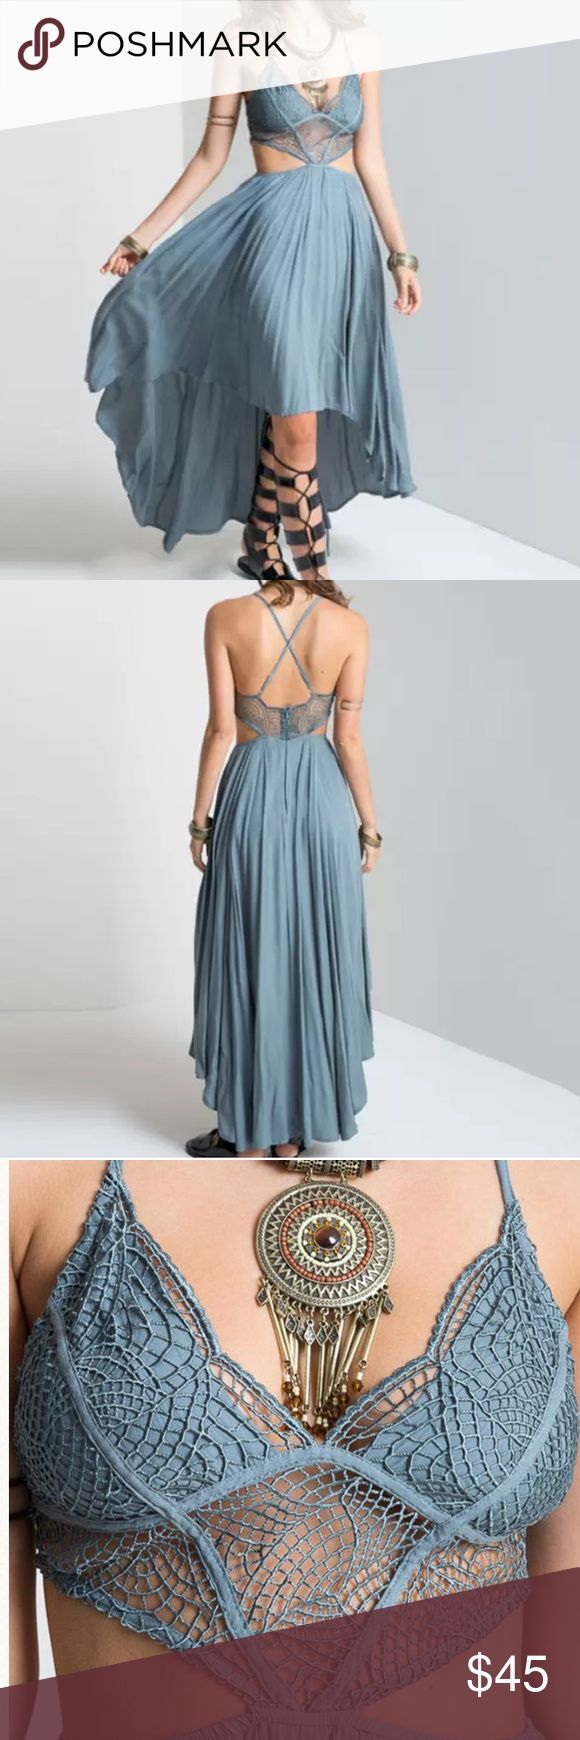 Cut out sides boho maxi dress This dress is simply amazing. It has the cotton laced top, open sides, v neck. High low maxi dress. Has open back with criss crossed straps, and a hidden zipper. The waist has a elastic band. Super boho inspired. Made from rayon and cotton. The top is very supportive. I suggest going a size up for a small if your cup is over a b, medium if your cup is over c, and large if your cup size is over a c. danglina Dresses High Low